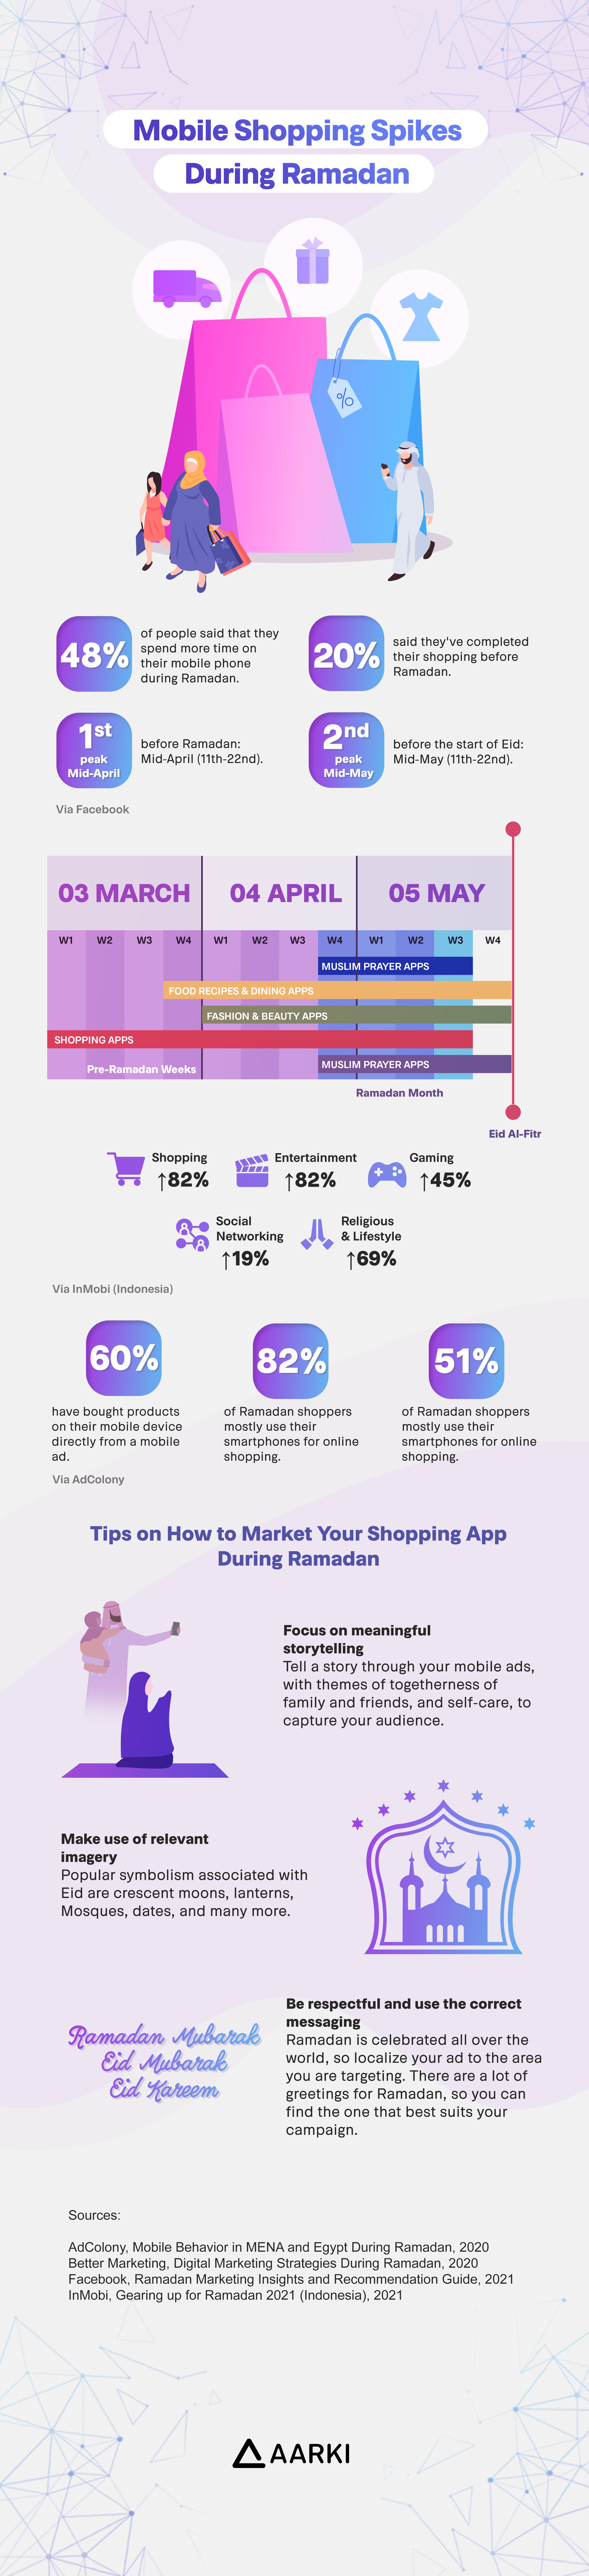 Mobile Shopping Spikes During Ramadan Infographic